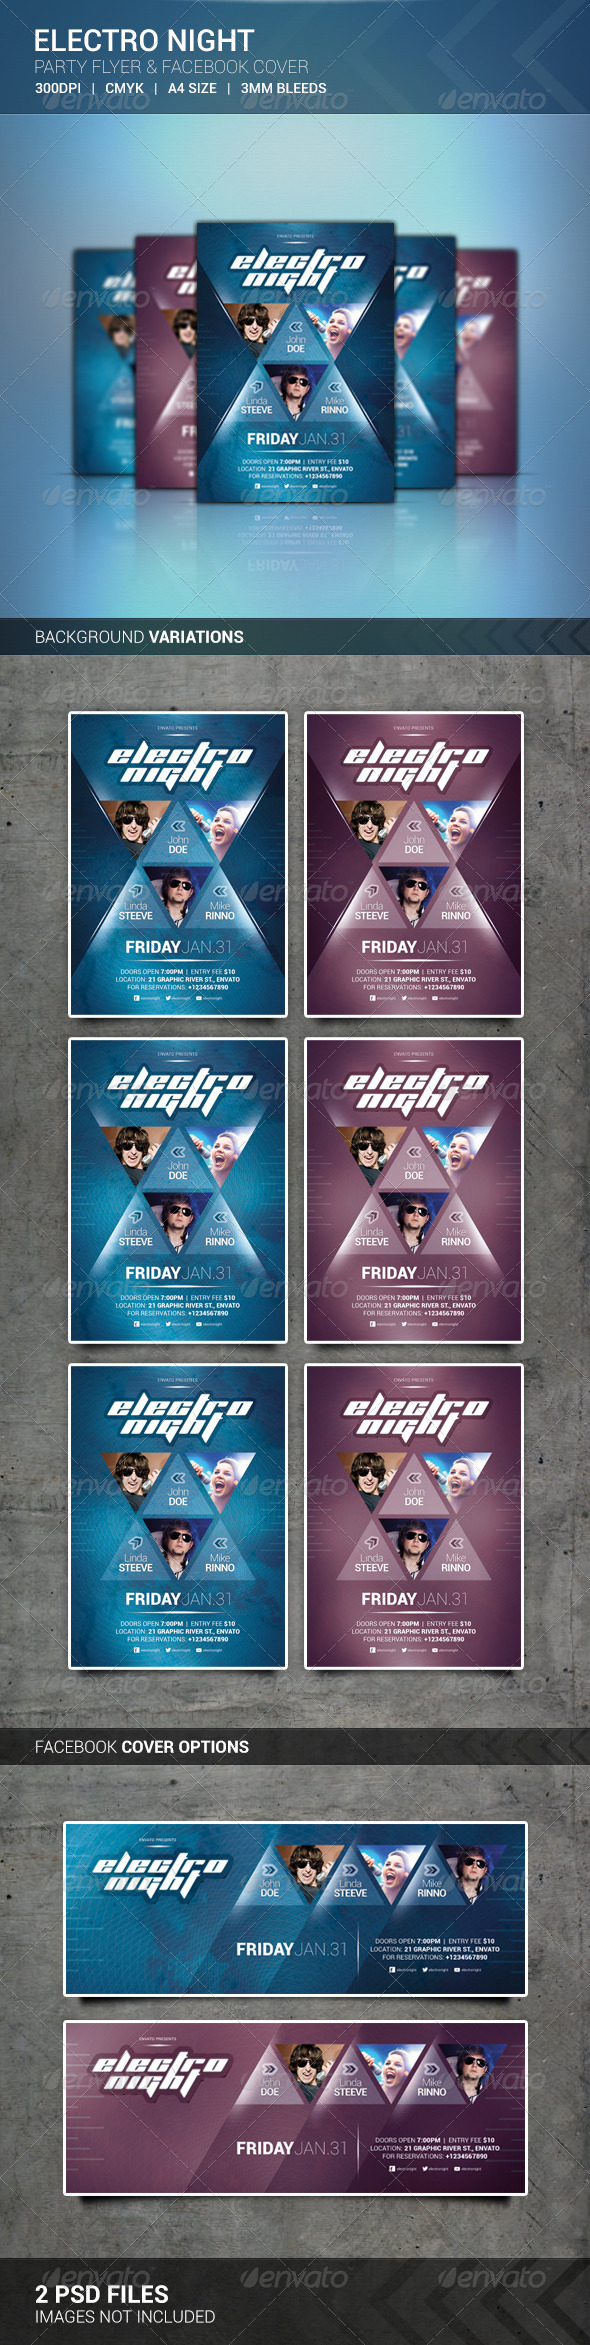 Electro Night Flyer & Facebook Cover - Clubs & Parties Events